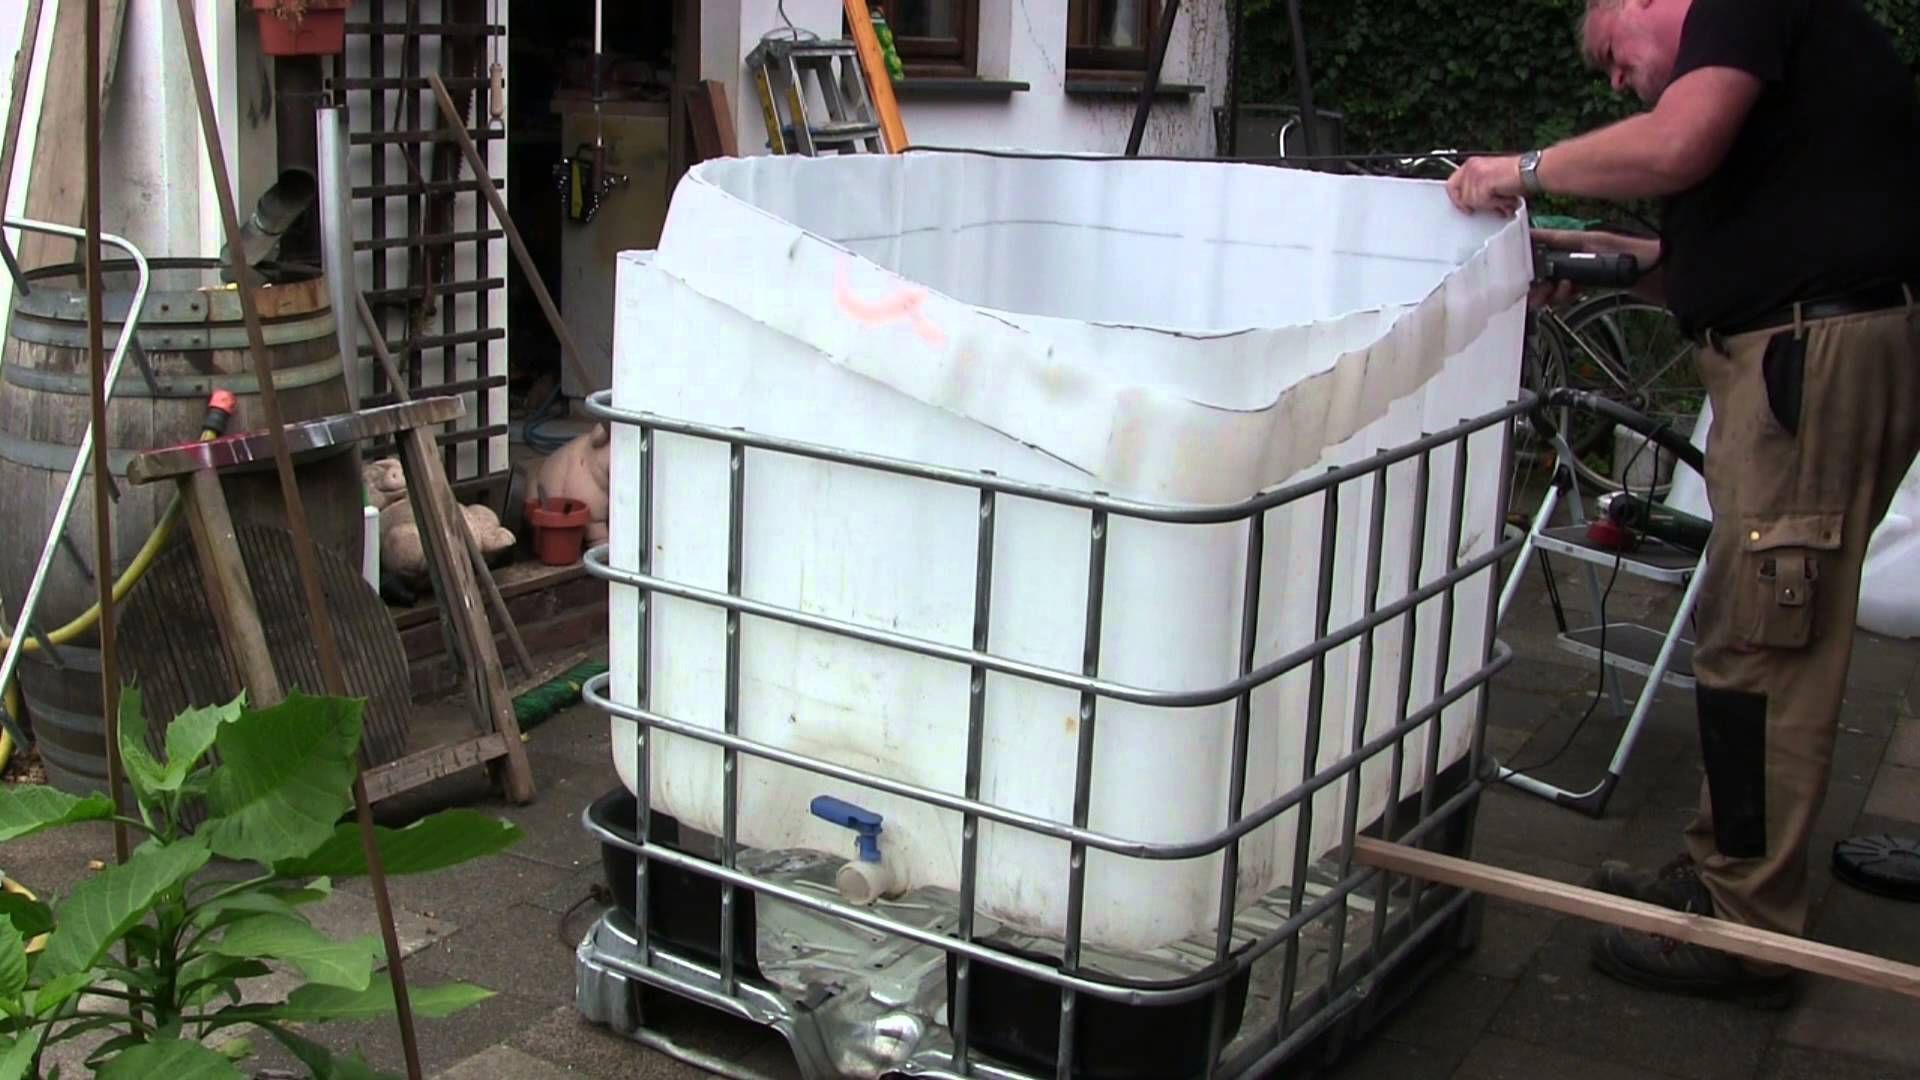 Pool Selber Bauen Video Video Pool Aus Ibc Tank Container Selber Bauen So Einfach